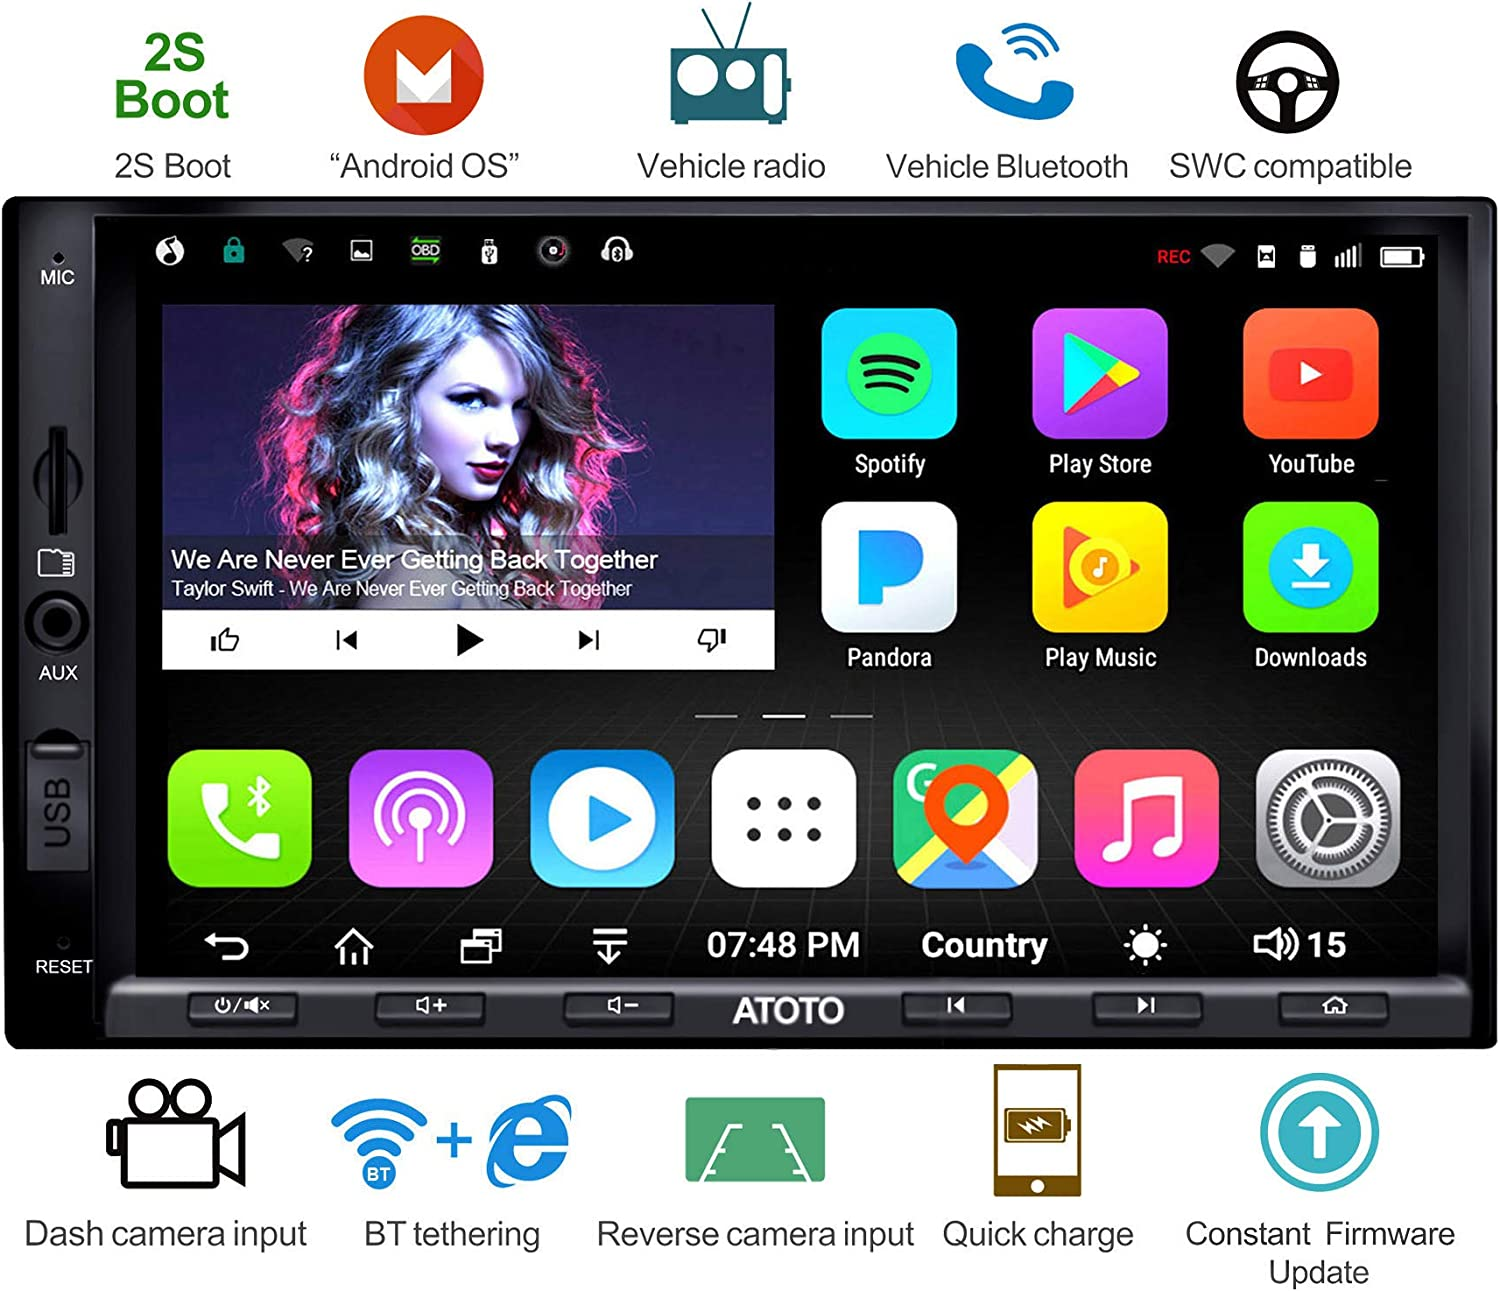 ATOTO A6 Android Car Navigation Stereo